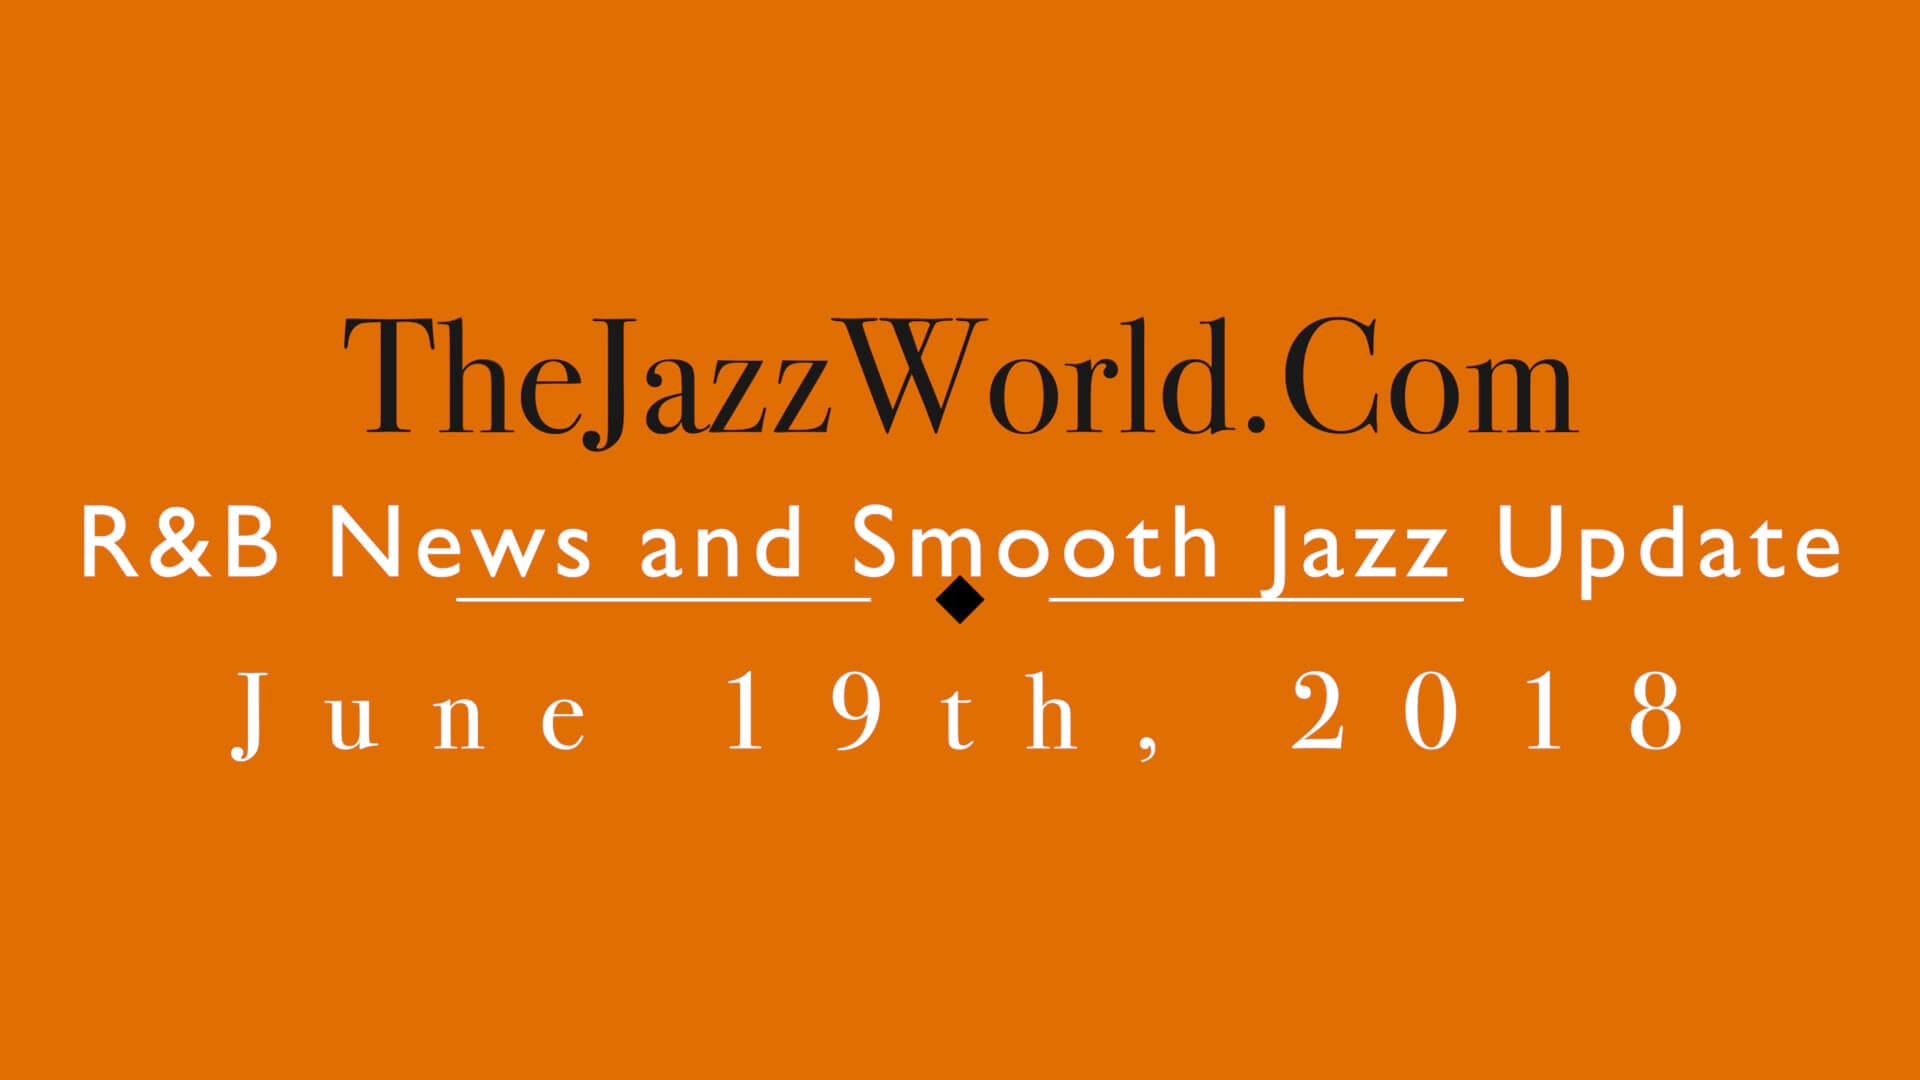 Latest R&B News and Smooth Jazz Update June 19th